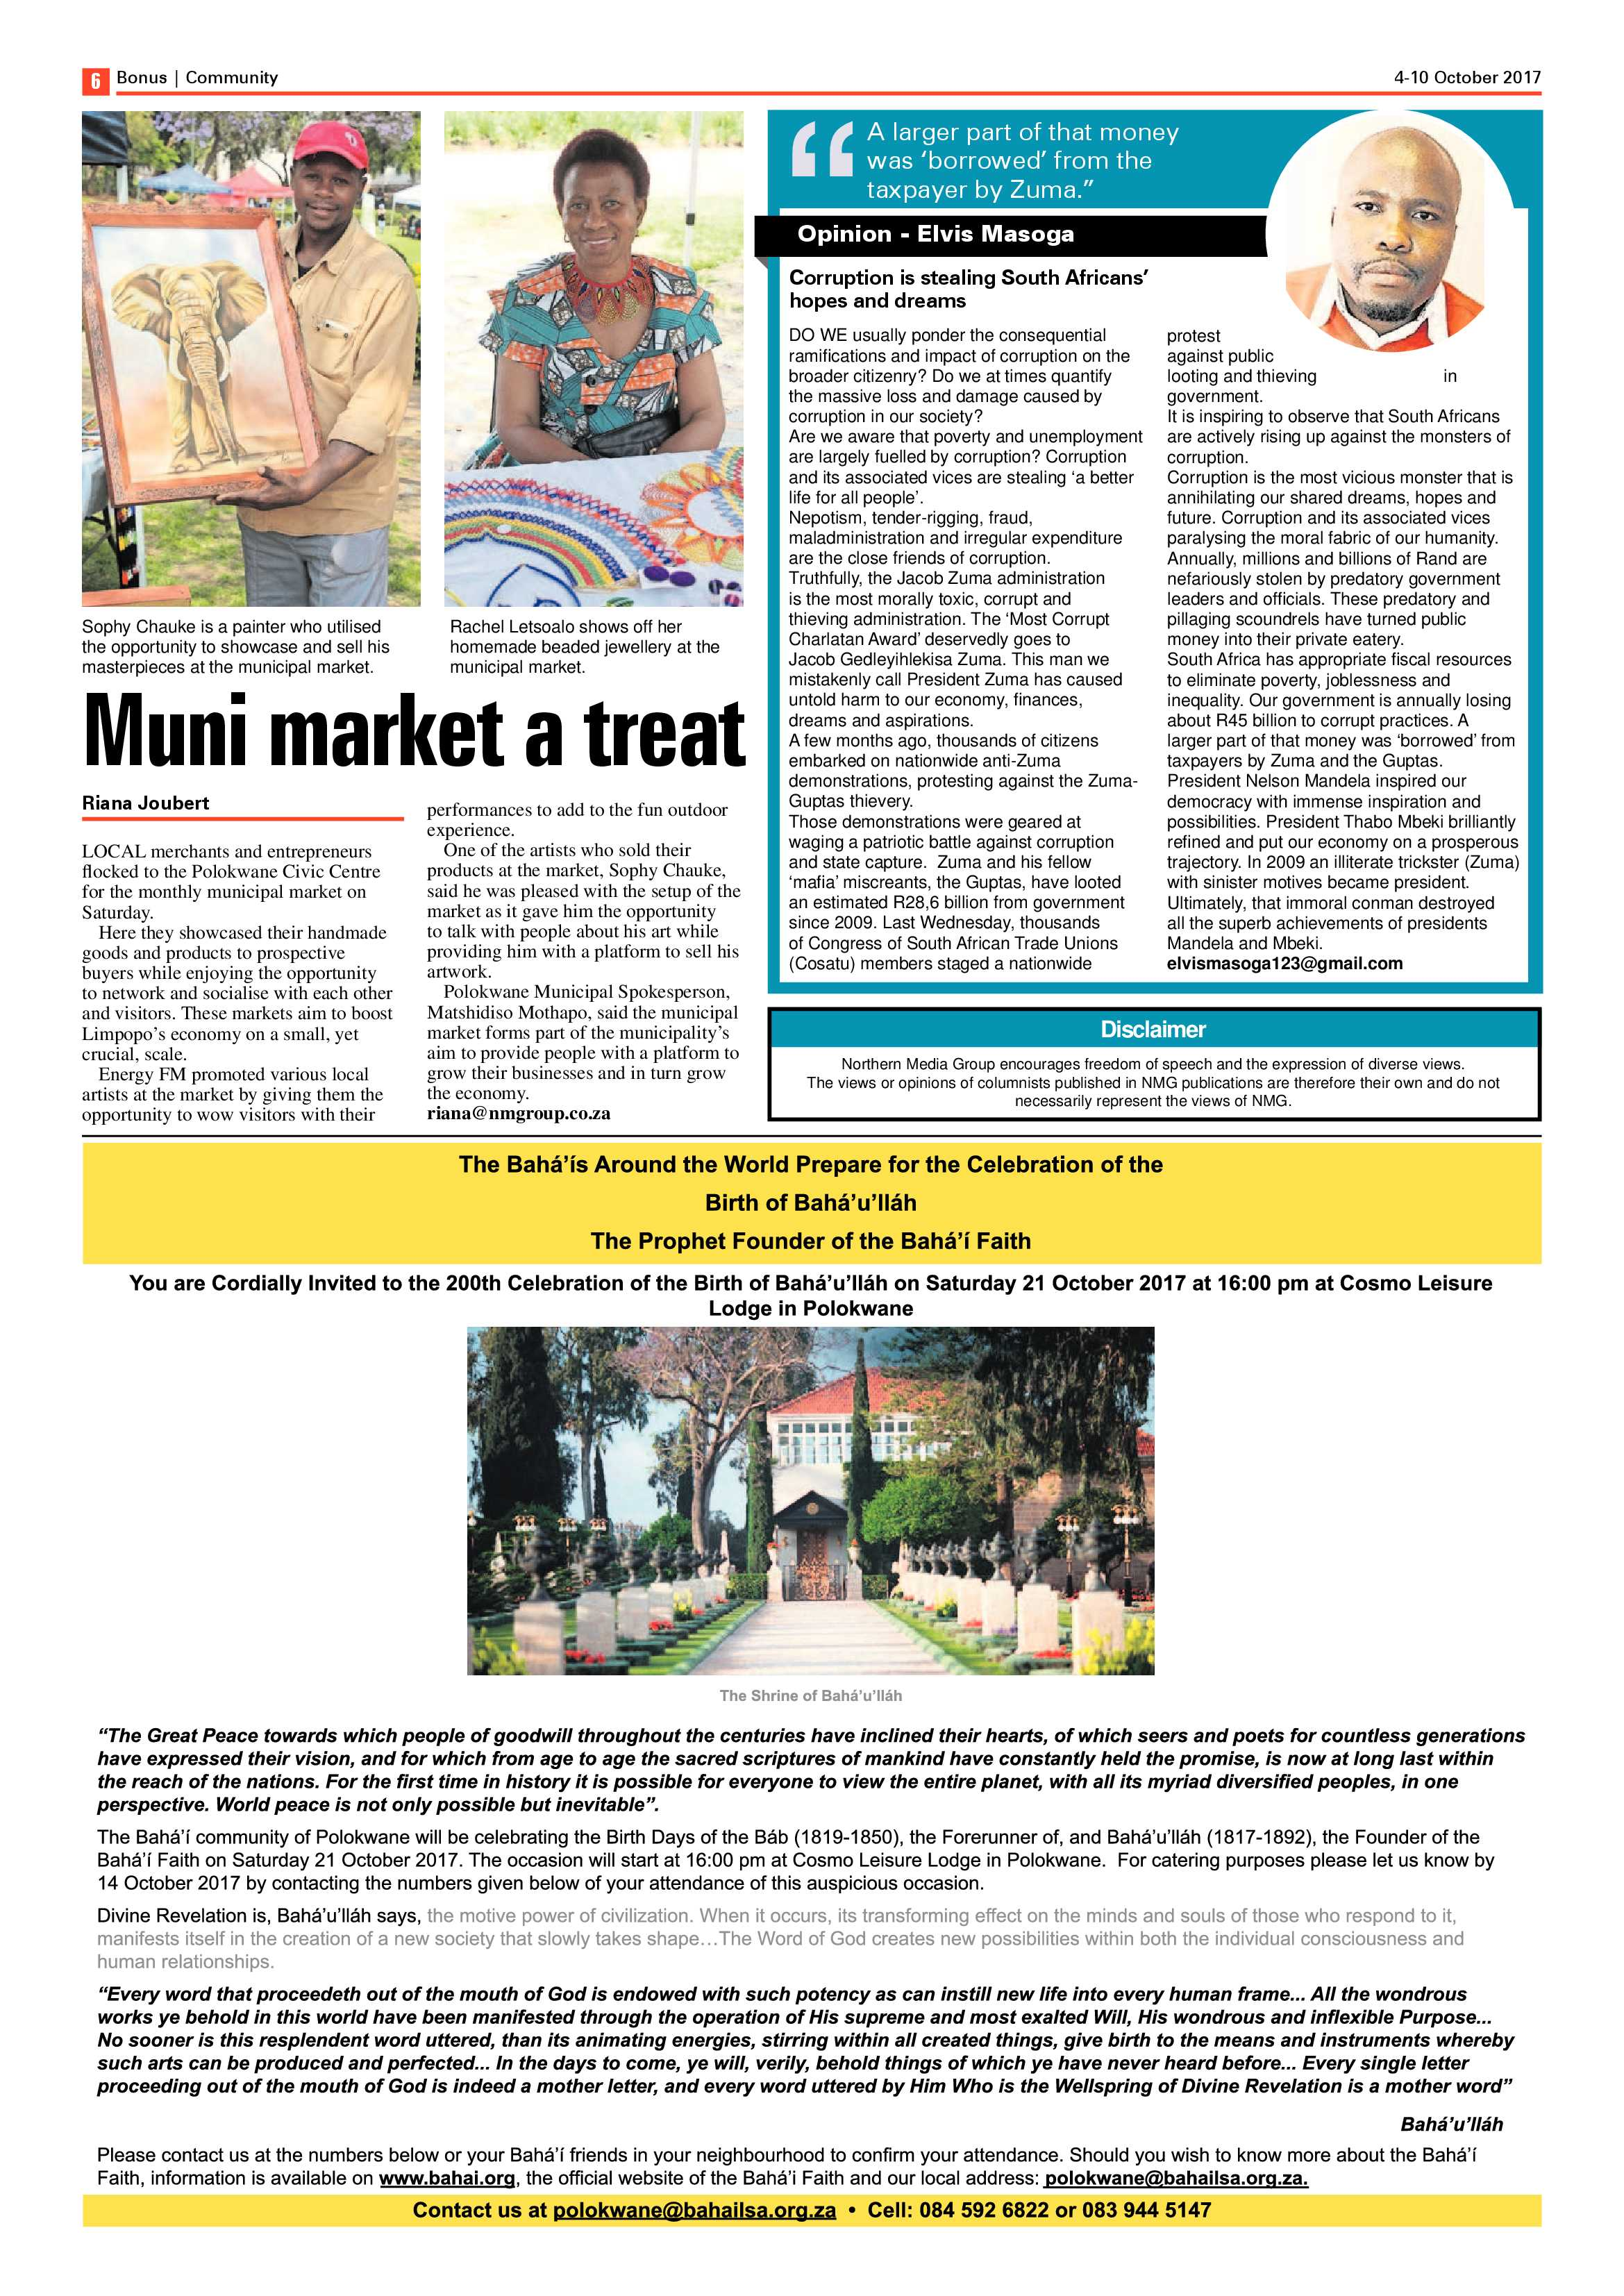 review-bonus-4-october-2017-epapers-page-6